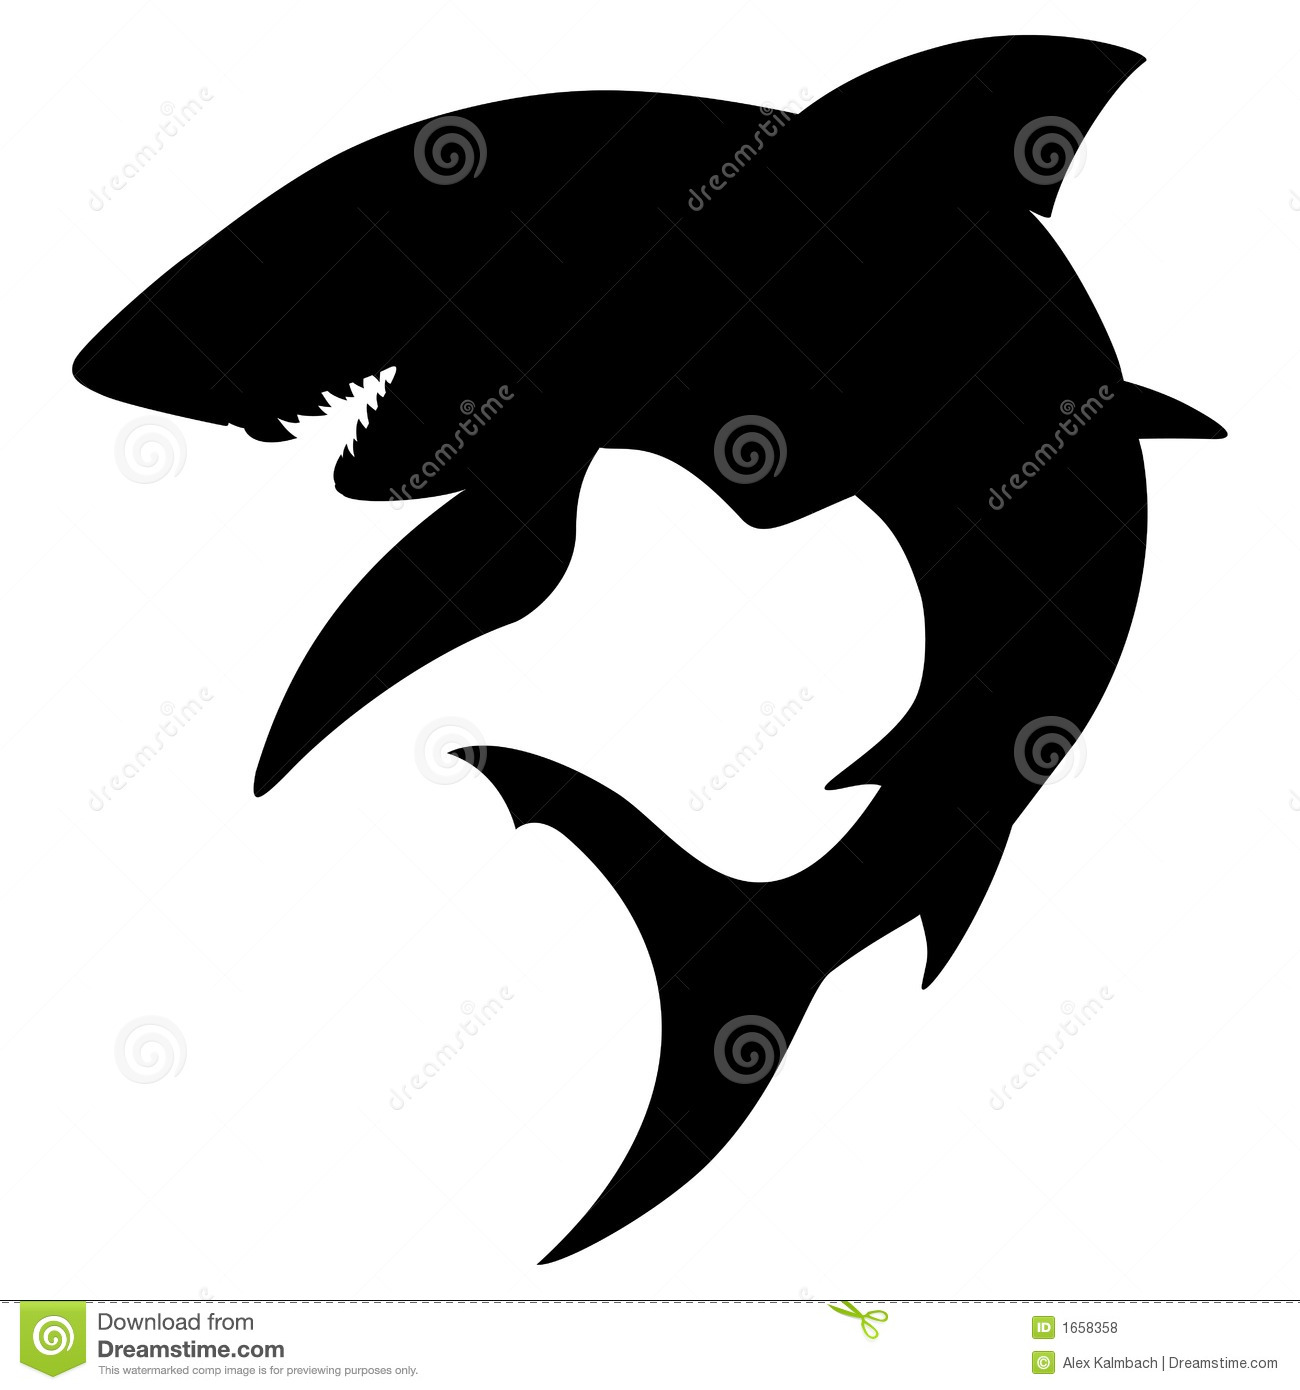 Shark Silhouette Royalty Free Stock Photos Image 1658358